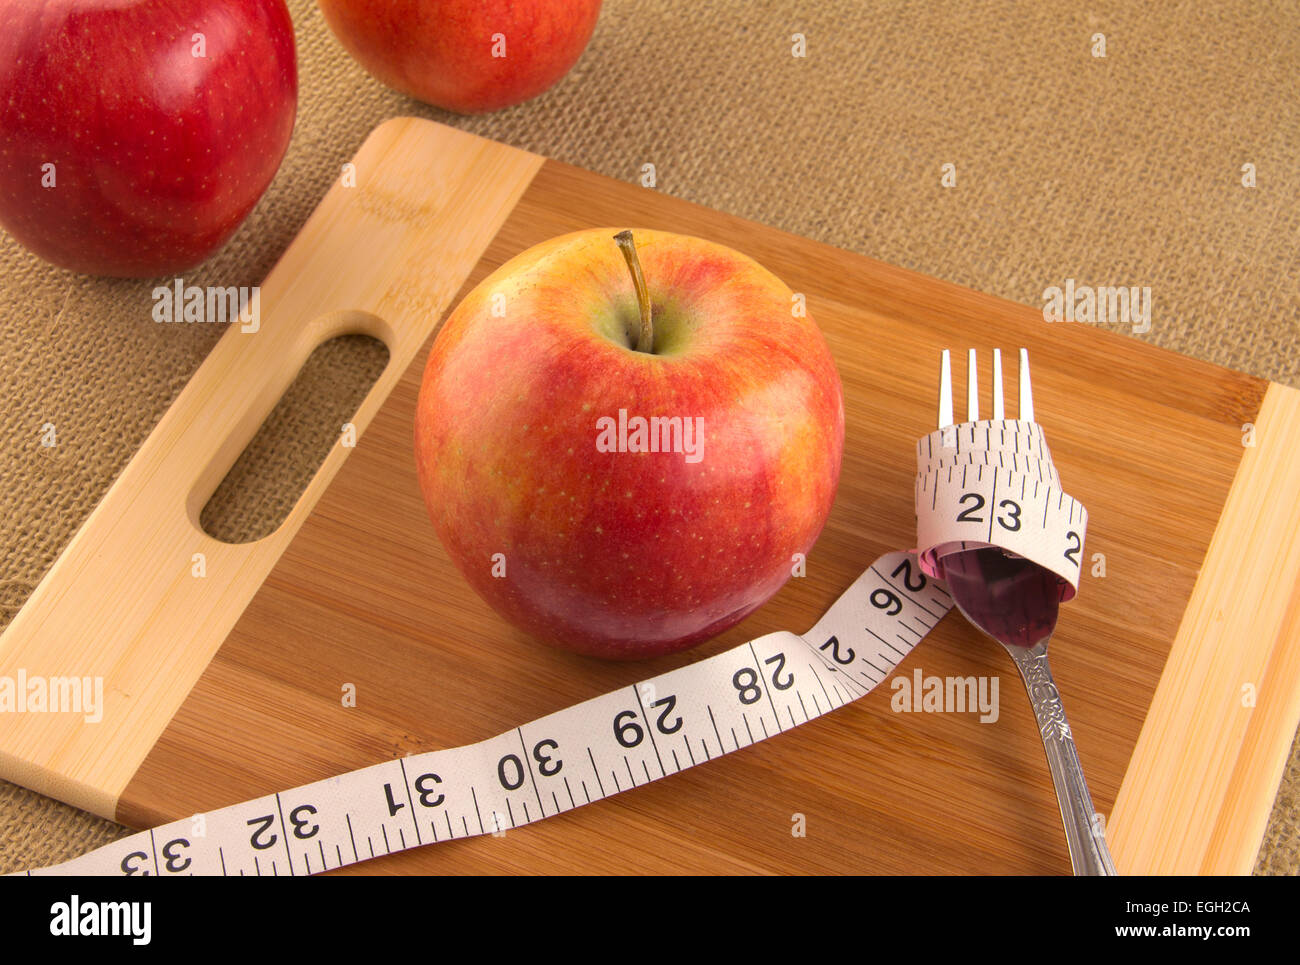 Healthy diet and nutrition for weight loss concept using apple and measuring tape - Stock Image